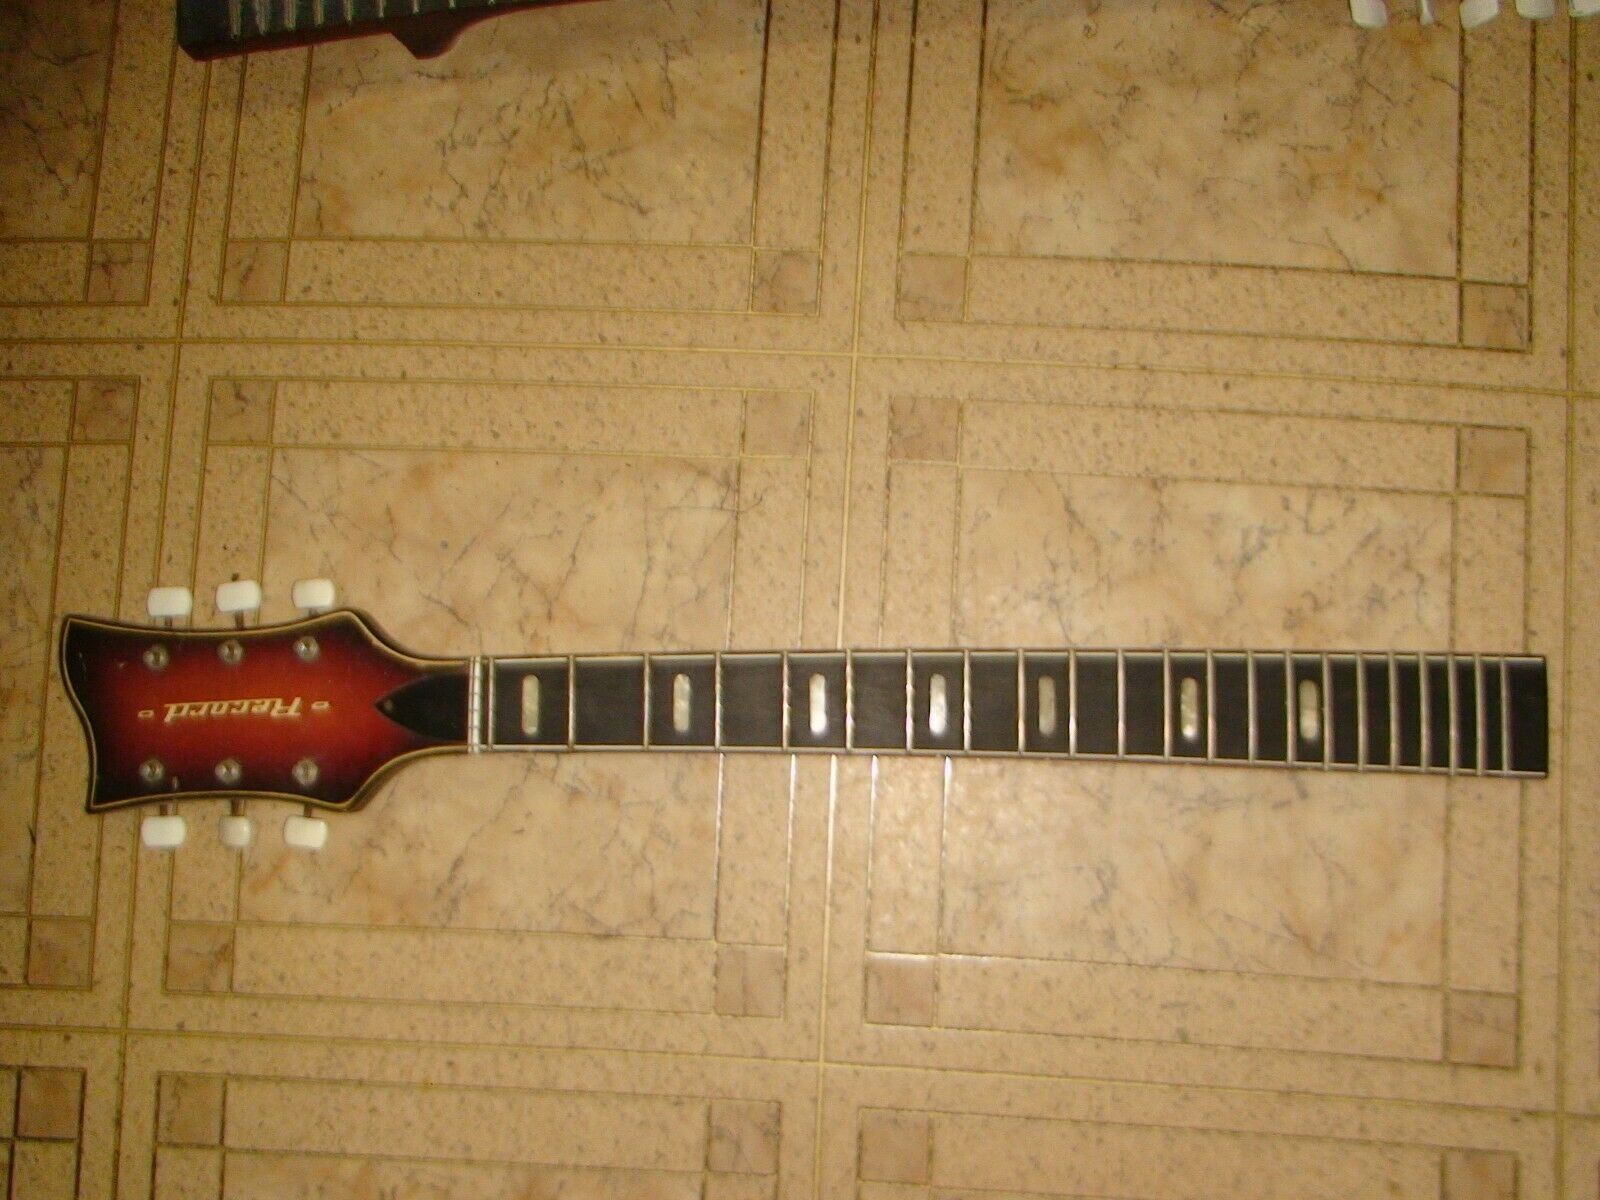 NECK FOR MUSIMA RECORD ELECTRIC GUITAR VINTAGE